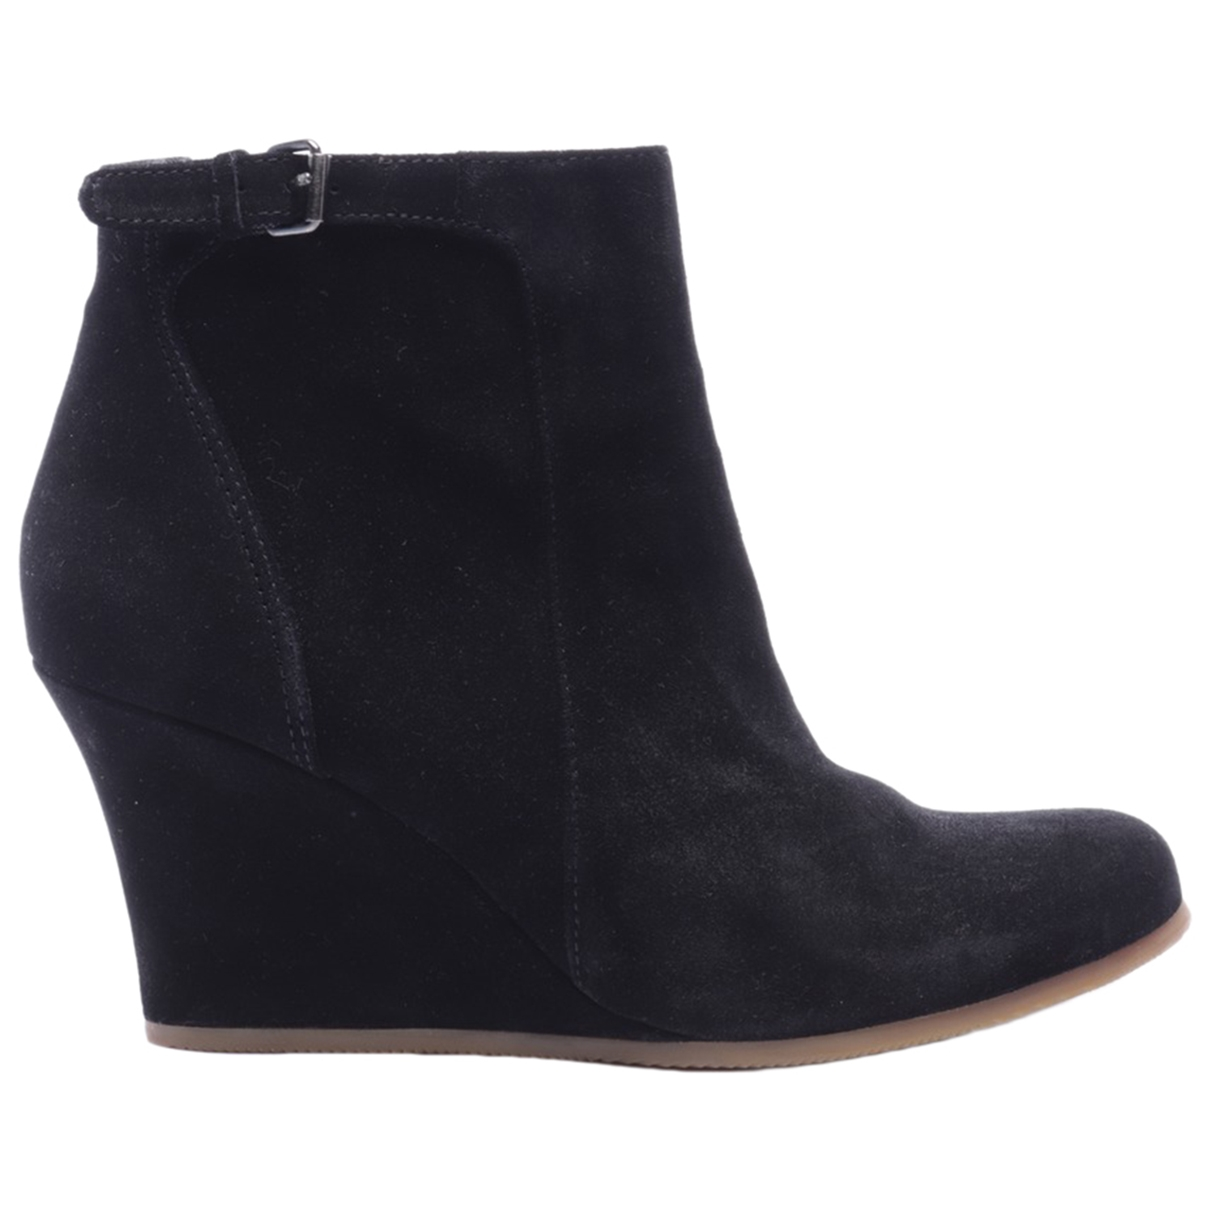 Lanvin N Black Leather Ankle boots for Women 38.5 EU